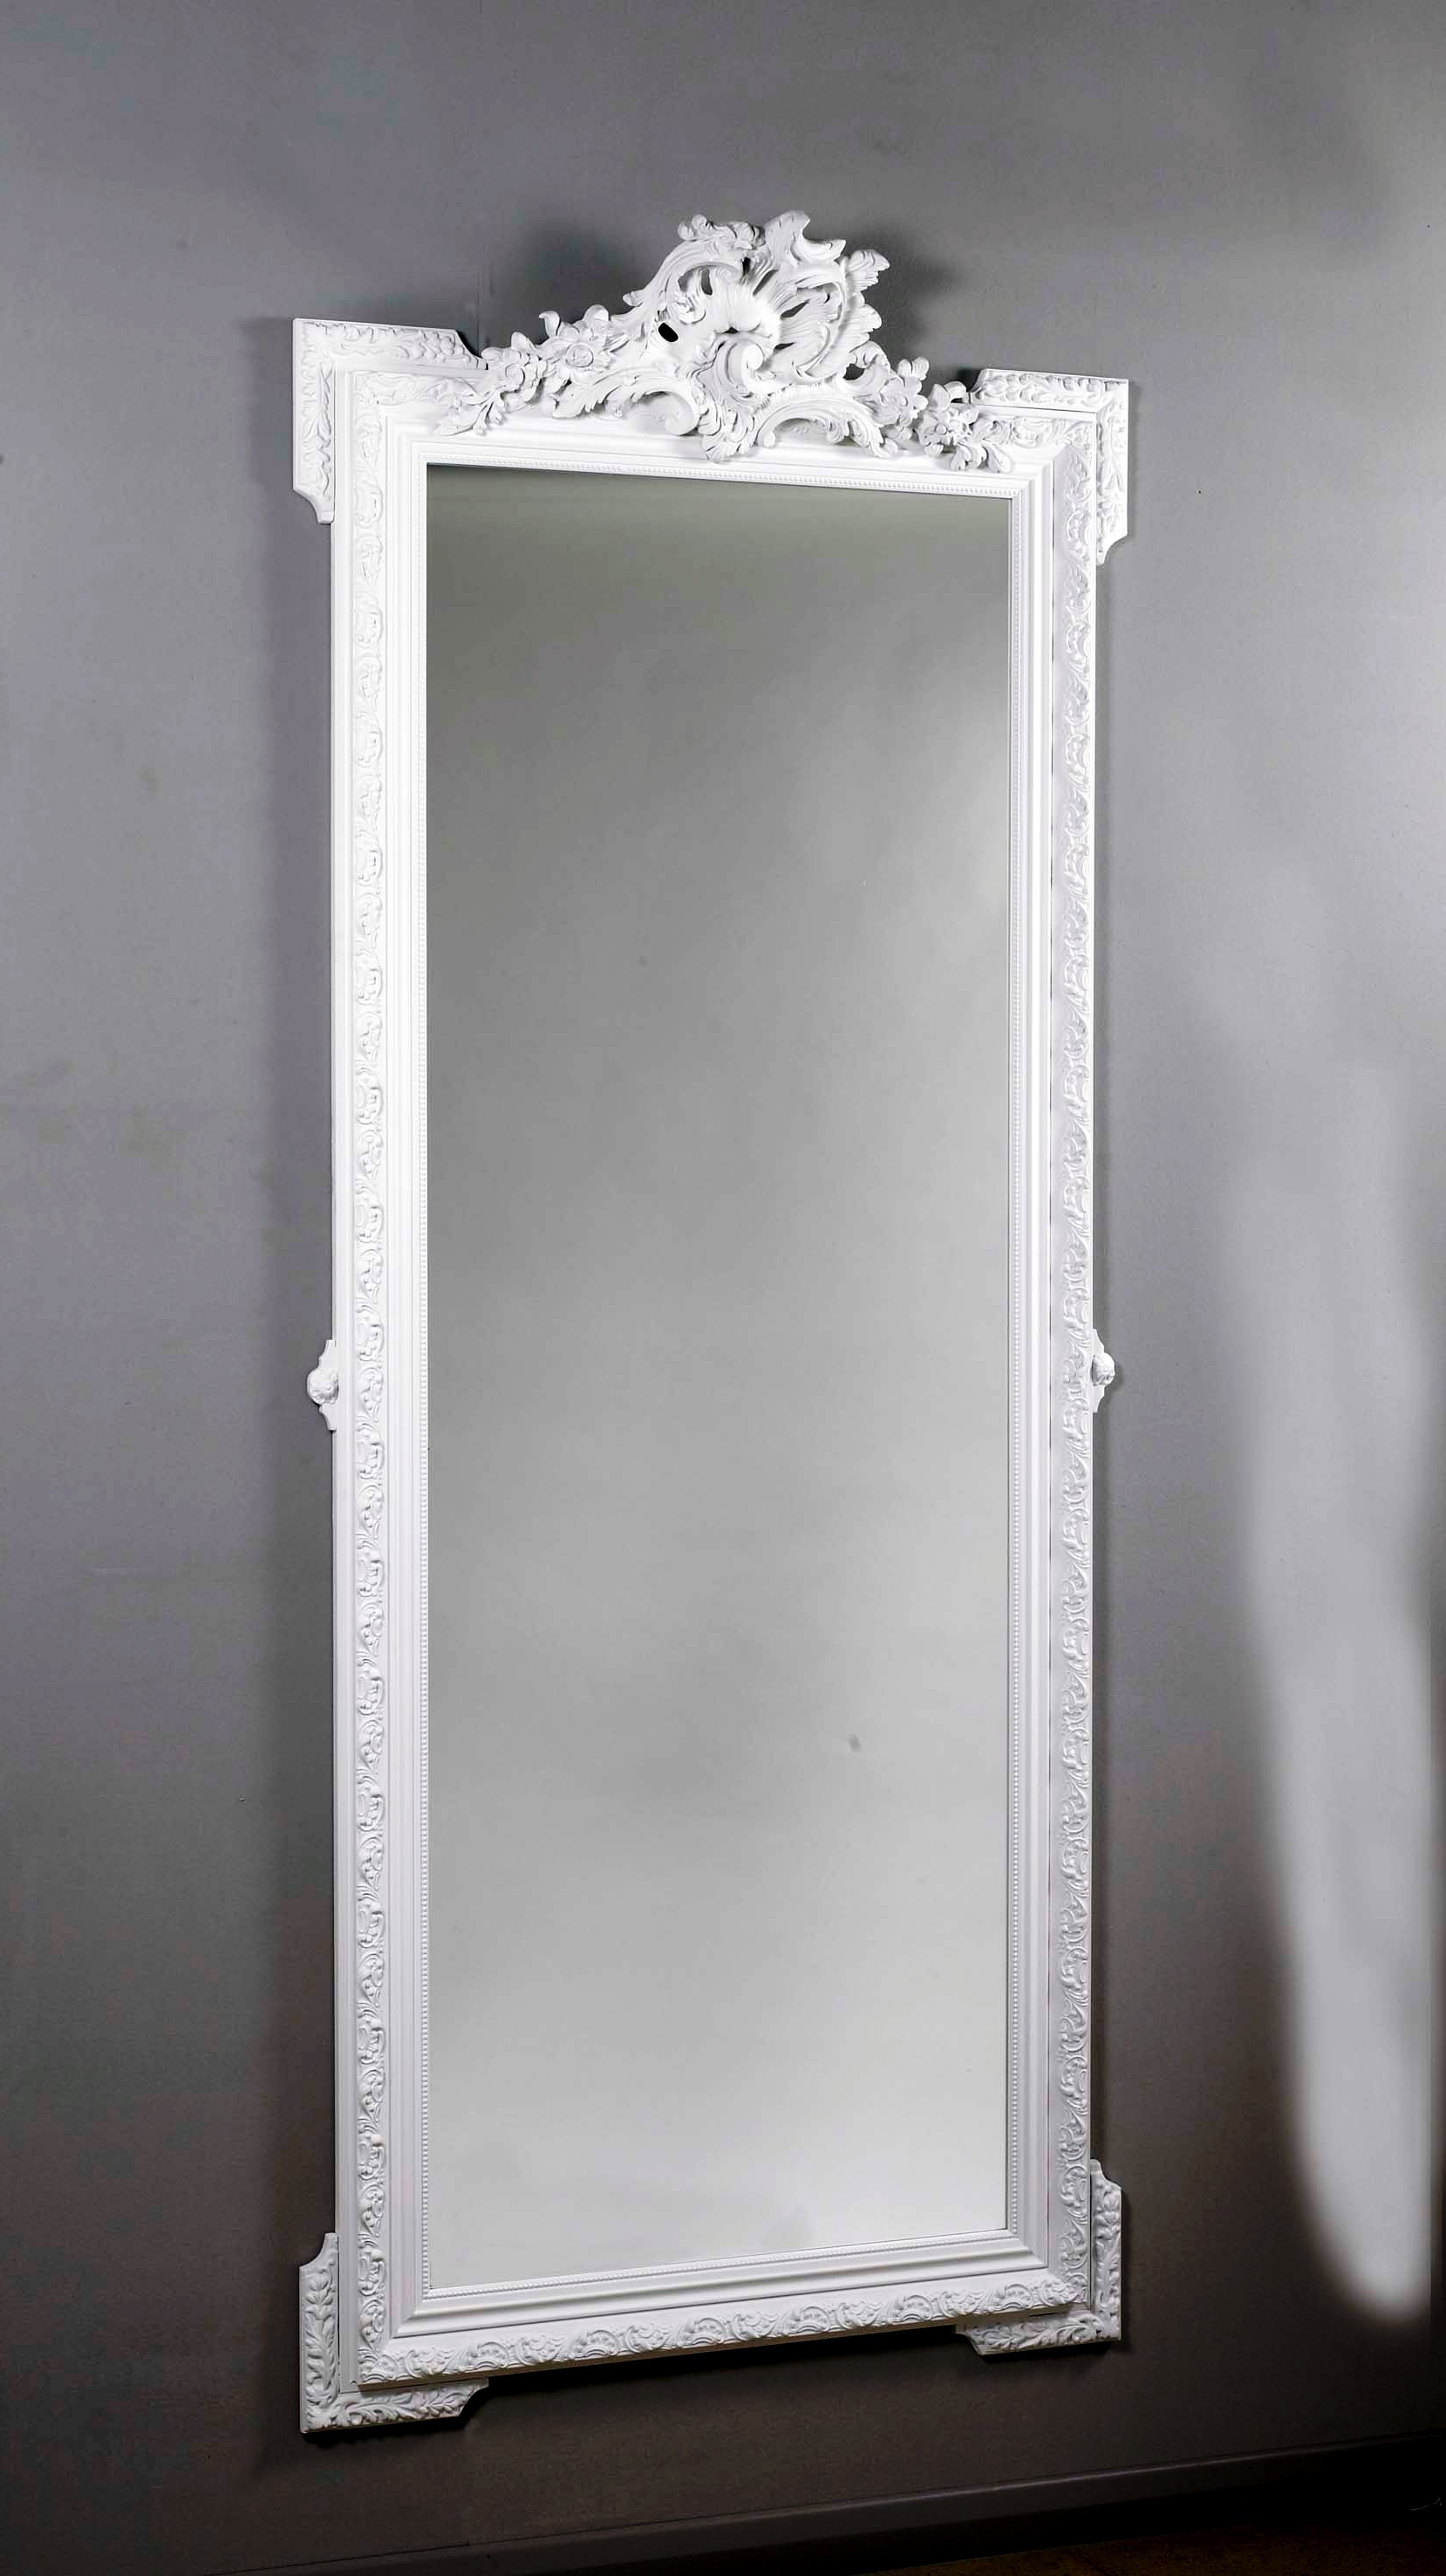 Preferred Full Length White Wall Mirrors Throughout Romantica Grande White Wall Mirror (View 18 of 20)